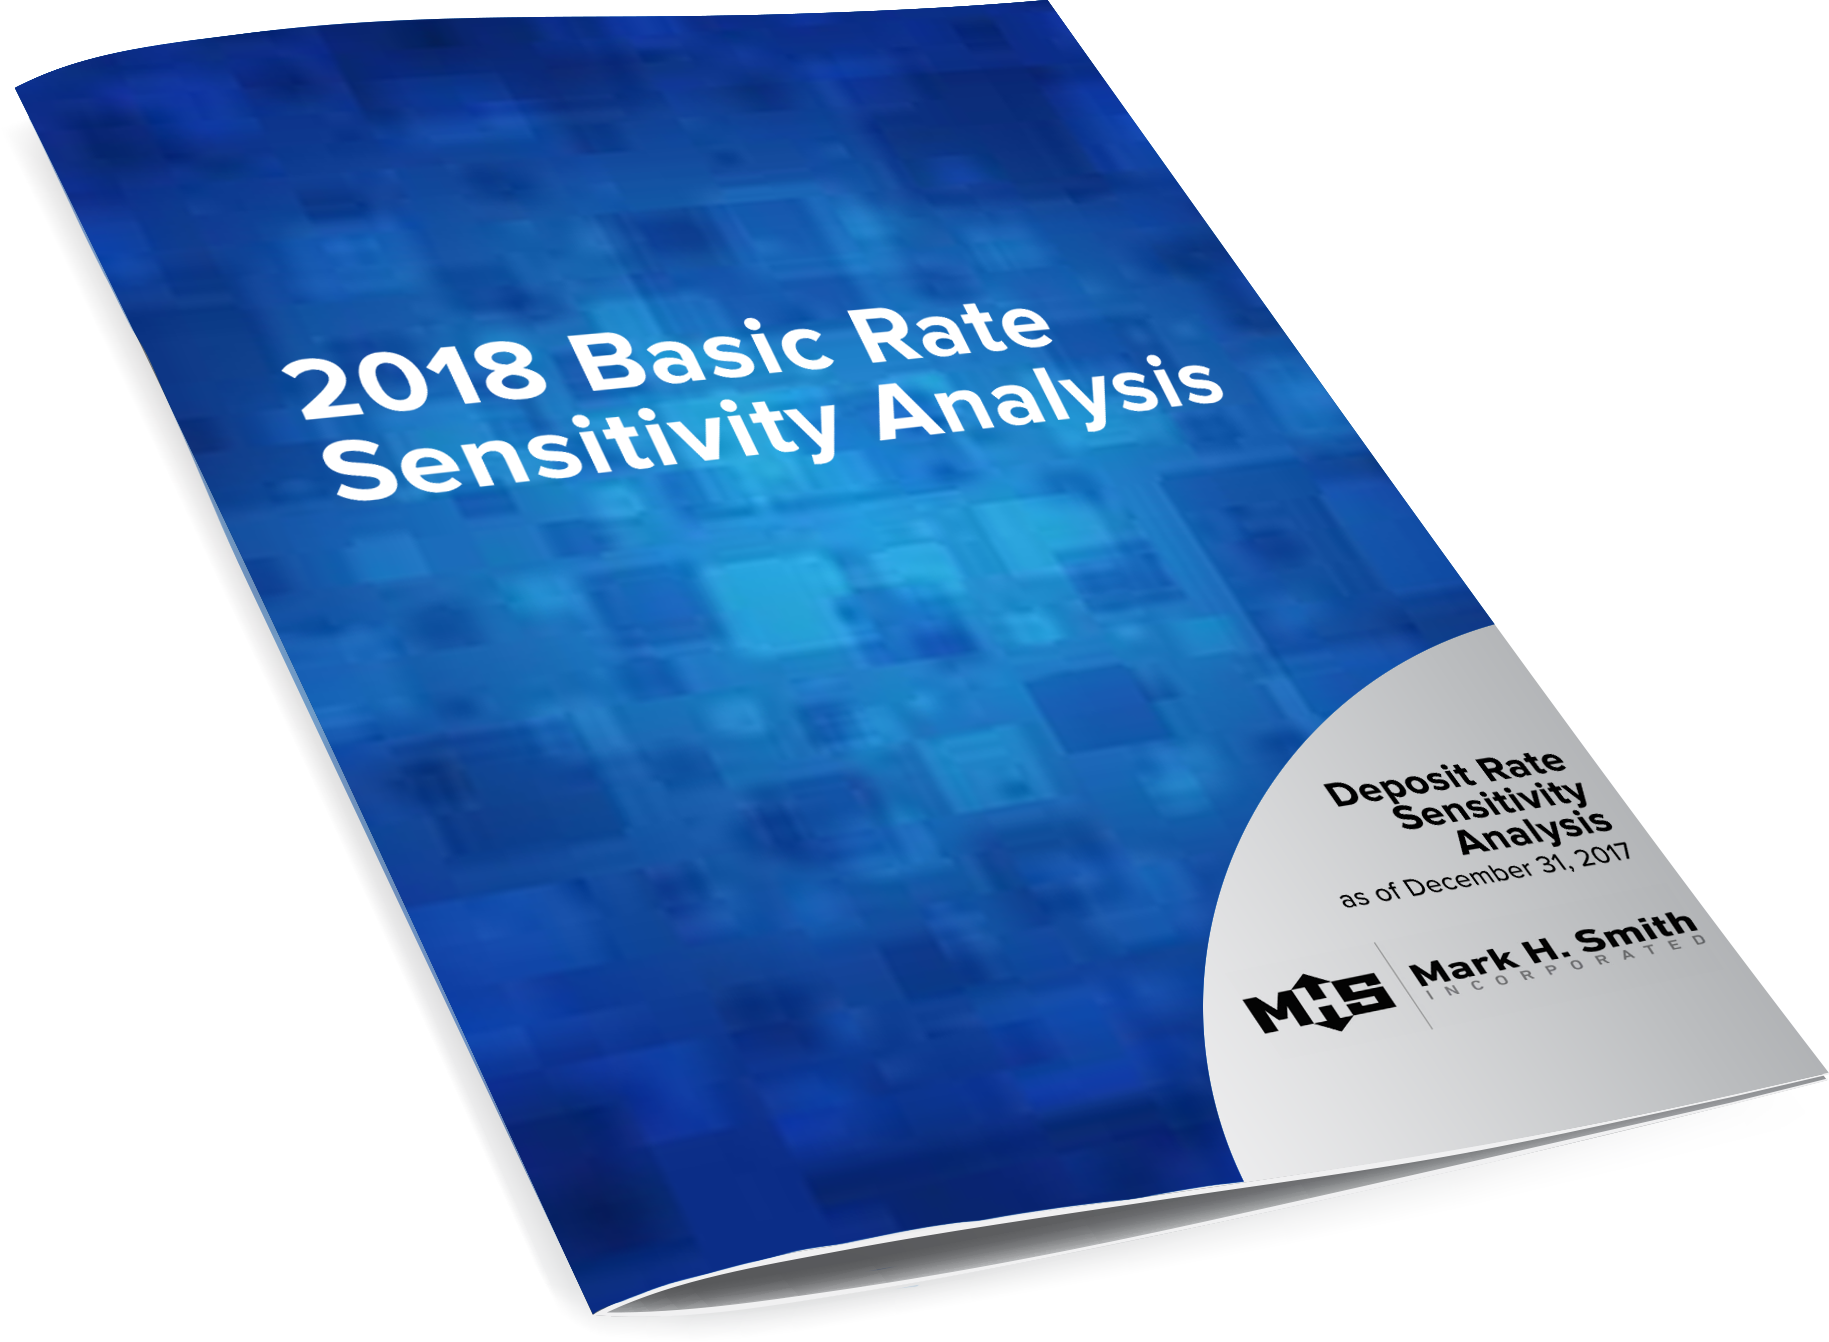 BRSA REPORT. Customized Basic Rate Sensitivity Analysis & Consult 2018